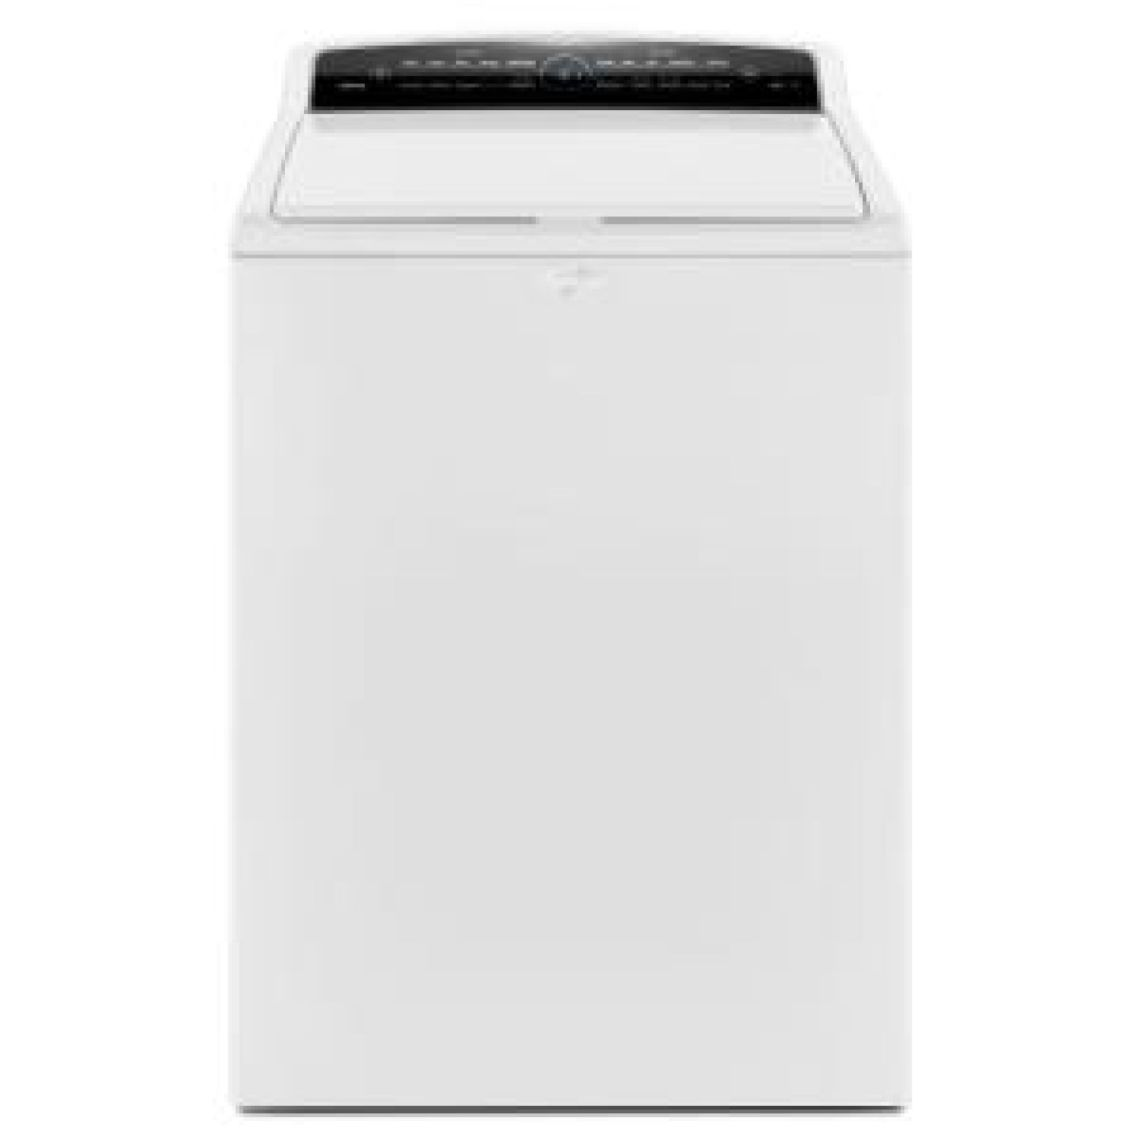 Whirlpool 4.8 cu. ft. High-Efficiency White Top Load Washing Machine with Adapative Wash Technology, ENERGY STAR-WTW7000DW - The Home Depot